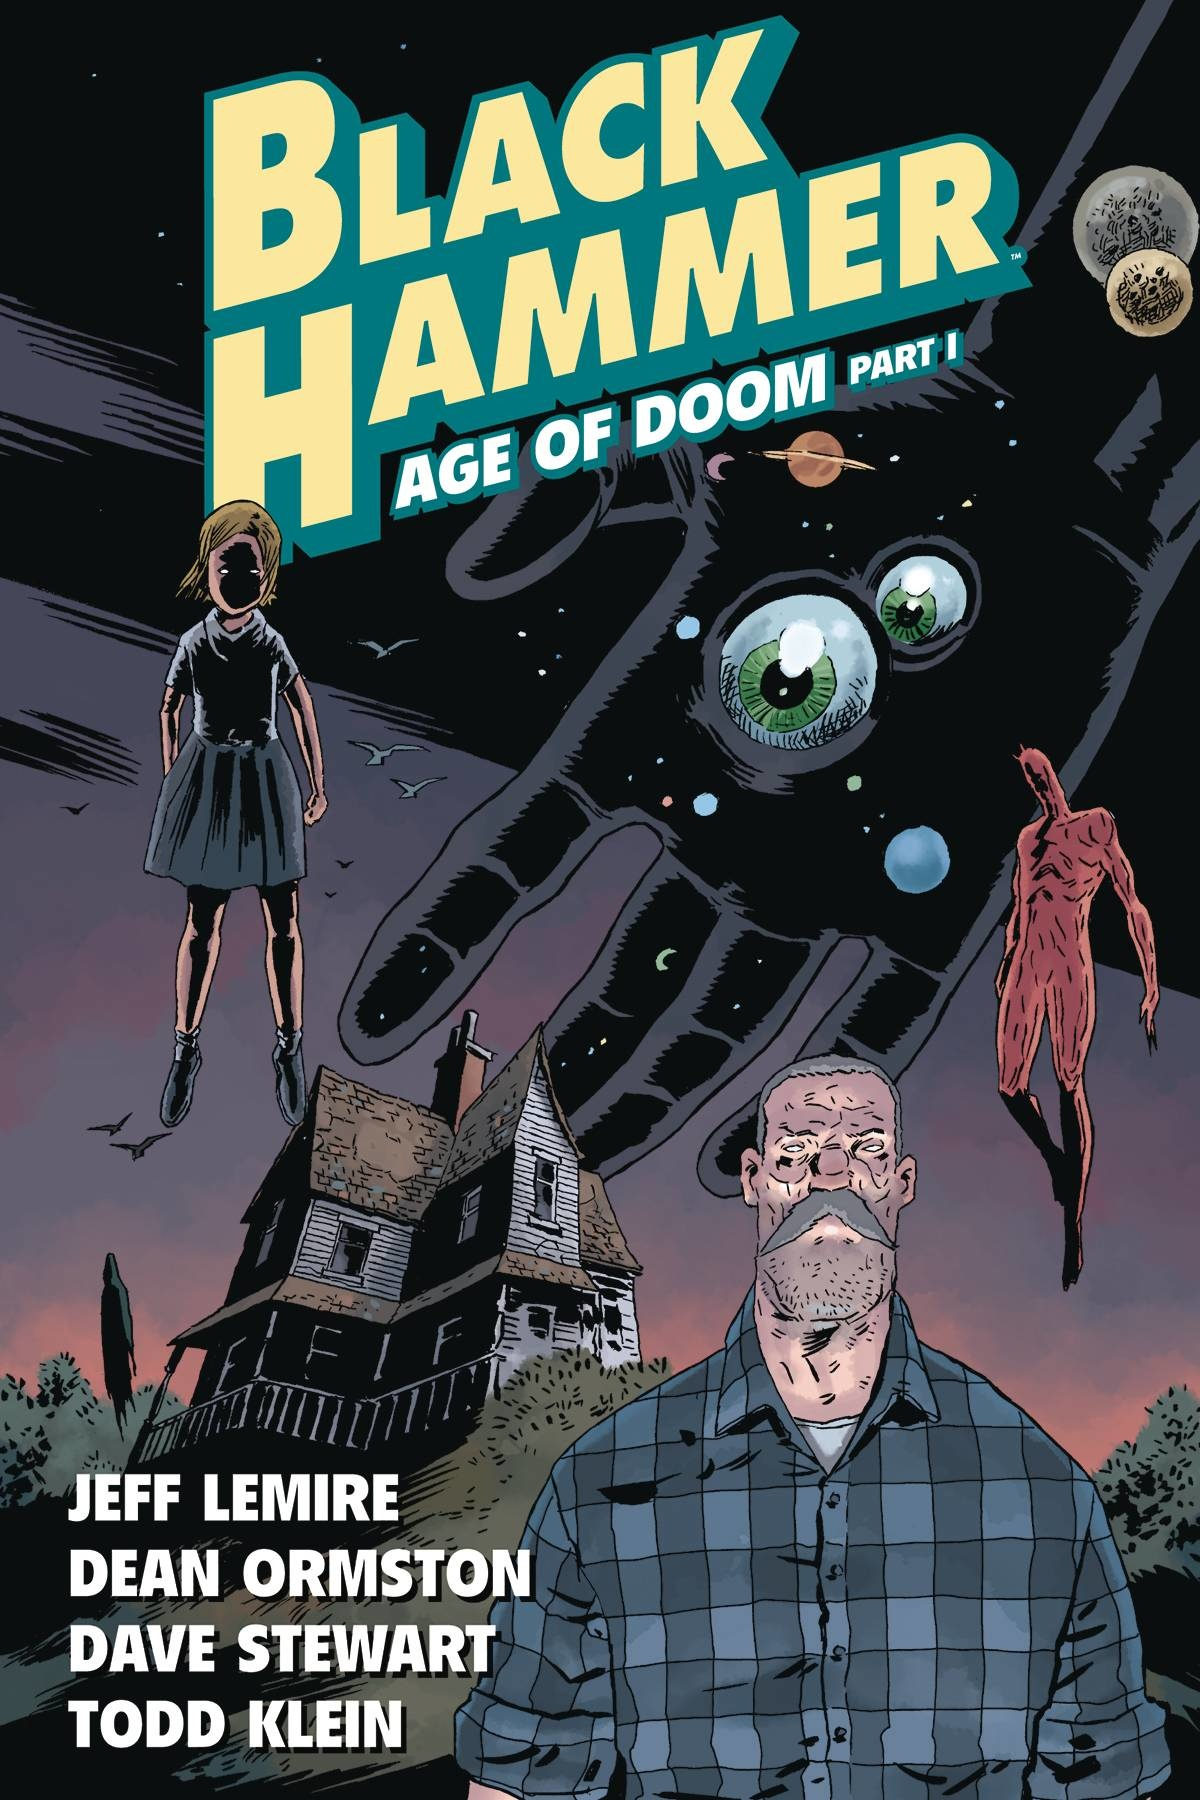 Black Hammer v.3: Age of Doom Part I